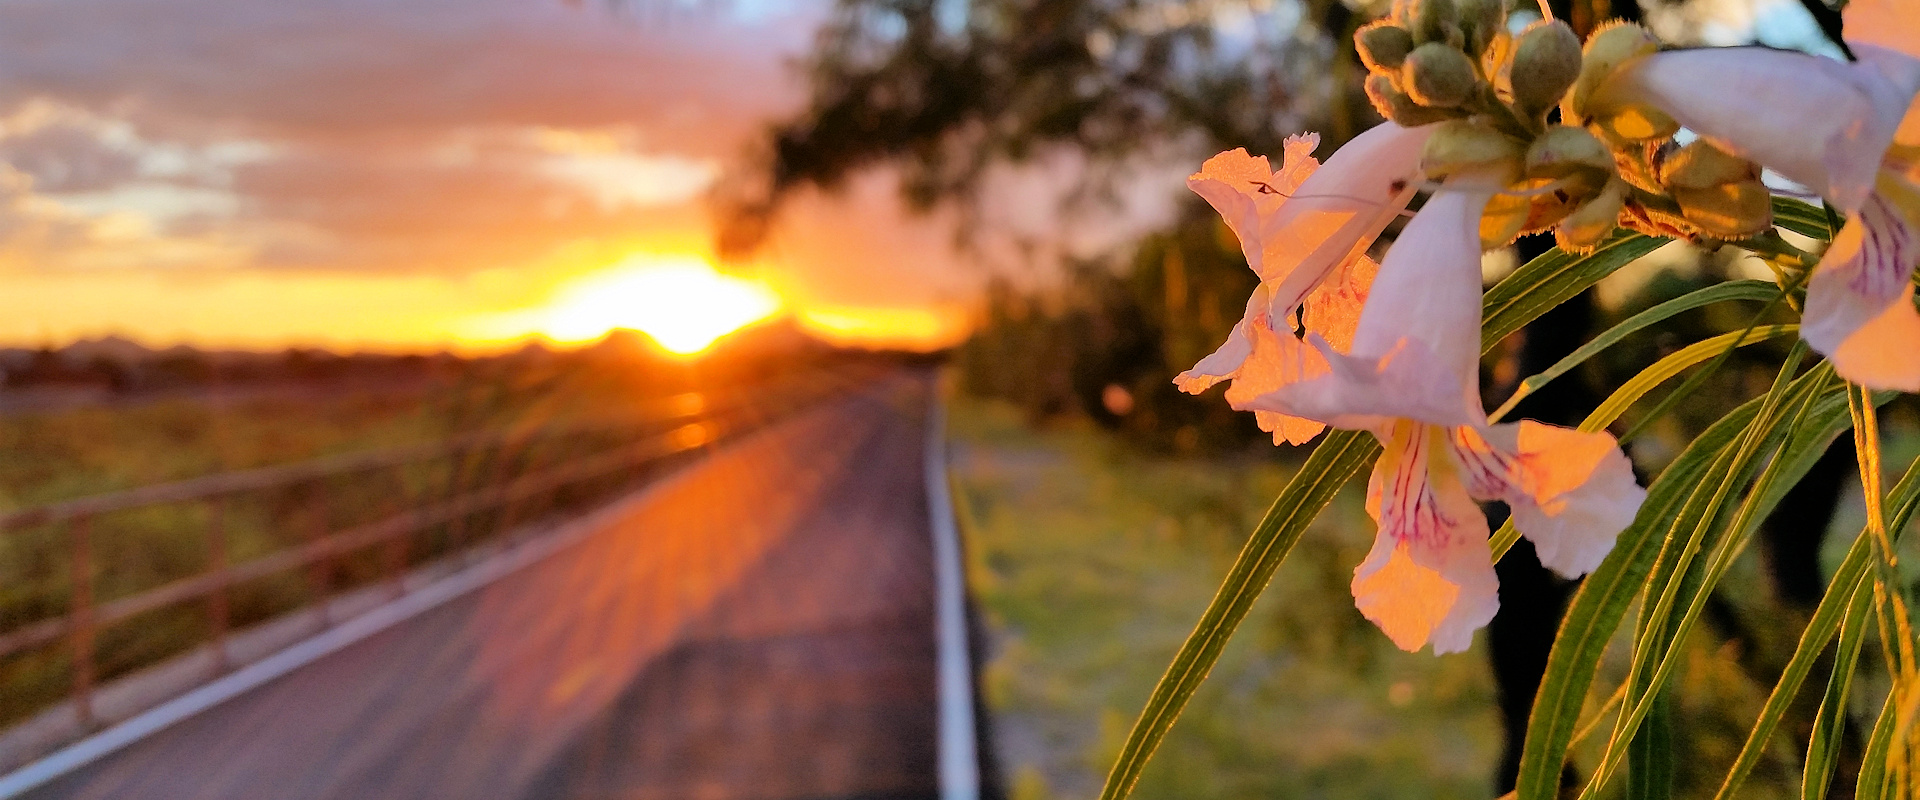 Rillito Loop Warm Sunset Wildflower Photo by Charles Peden psychic medium animal communicator Tucson Arizona